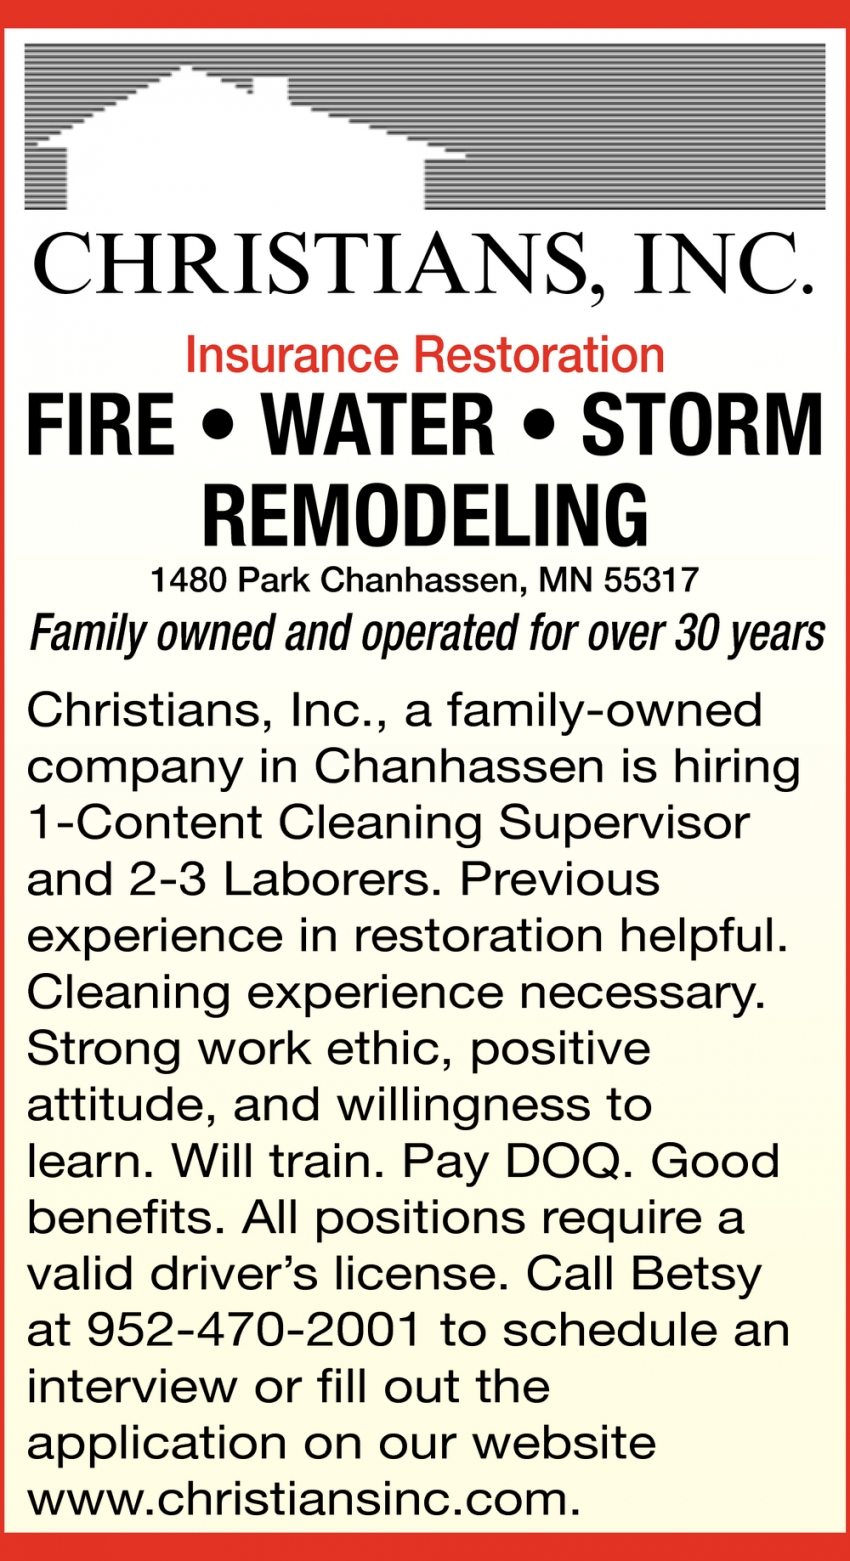 Cleaning Supervisor & Laborers